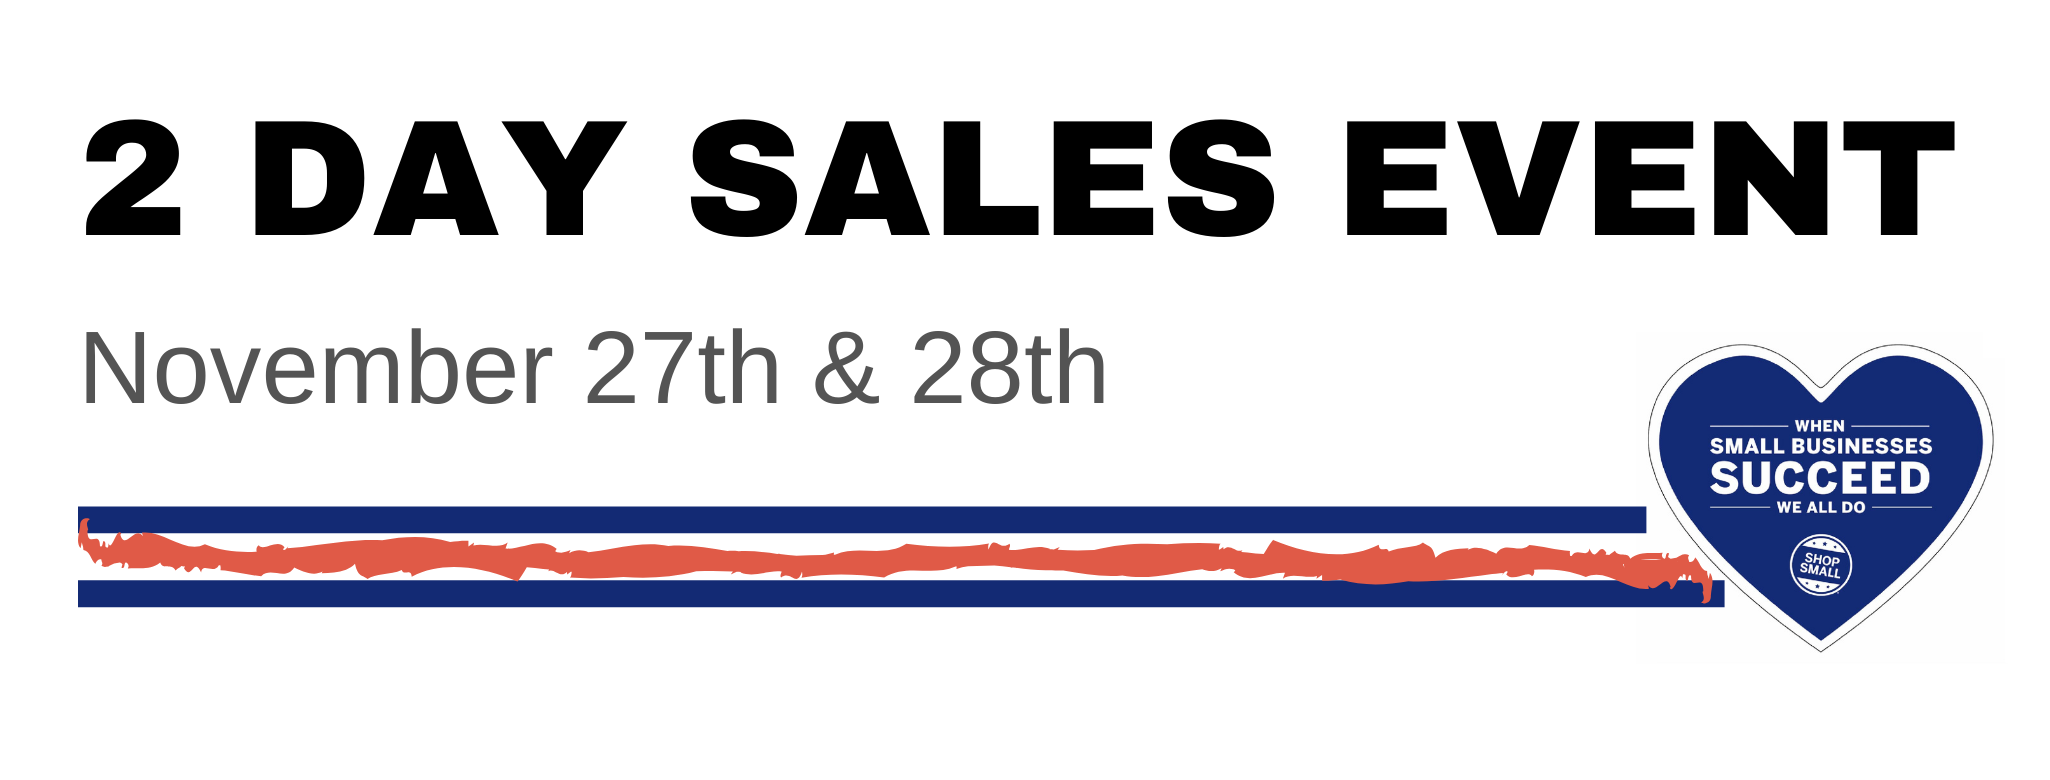 2 Day Sales Event